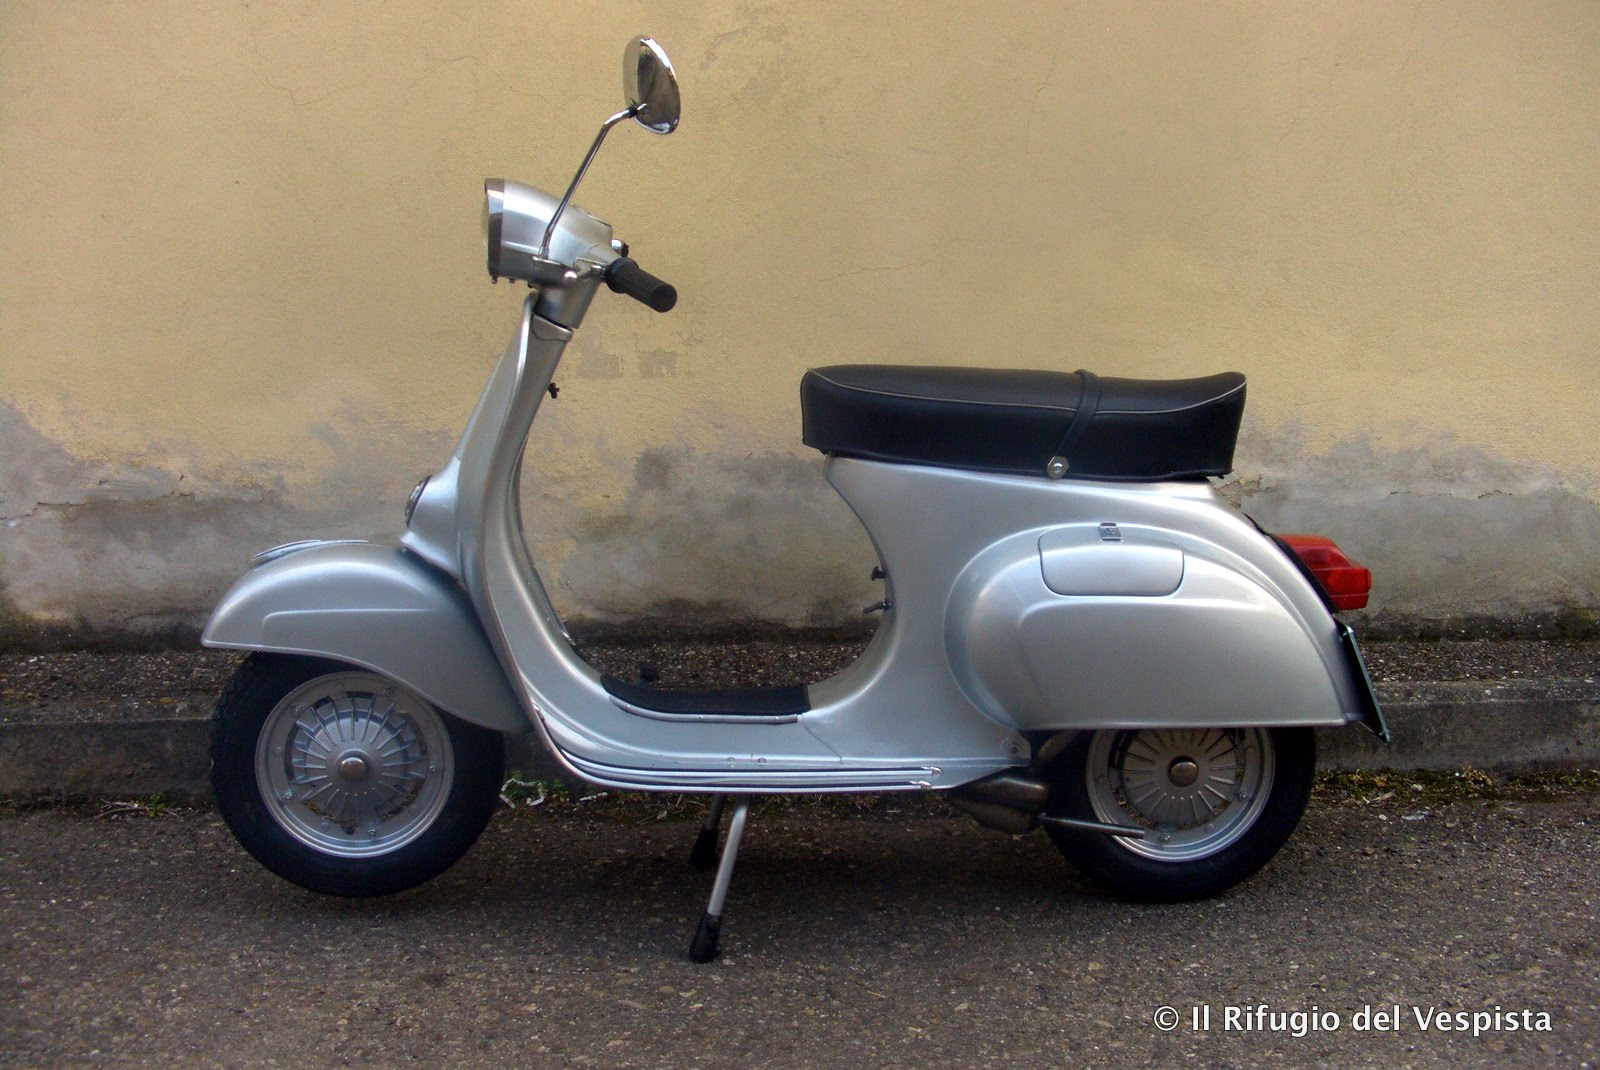 rdv restauro vespa vespa 125 primavera grigio o bianco. Black Bedroom Furniture Sets. Home Design Ideas